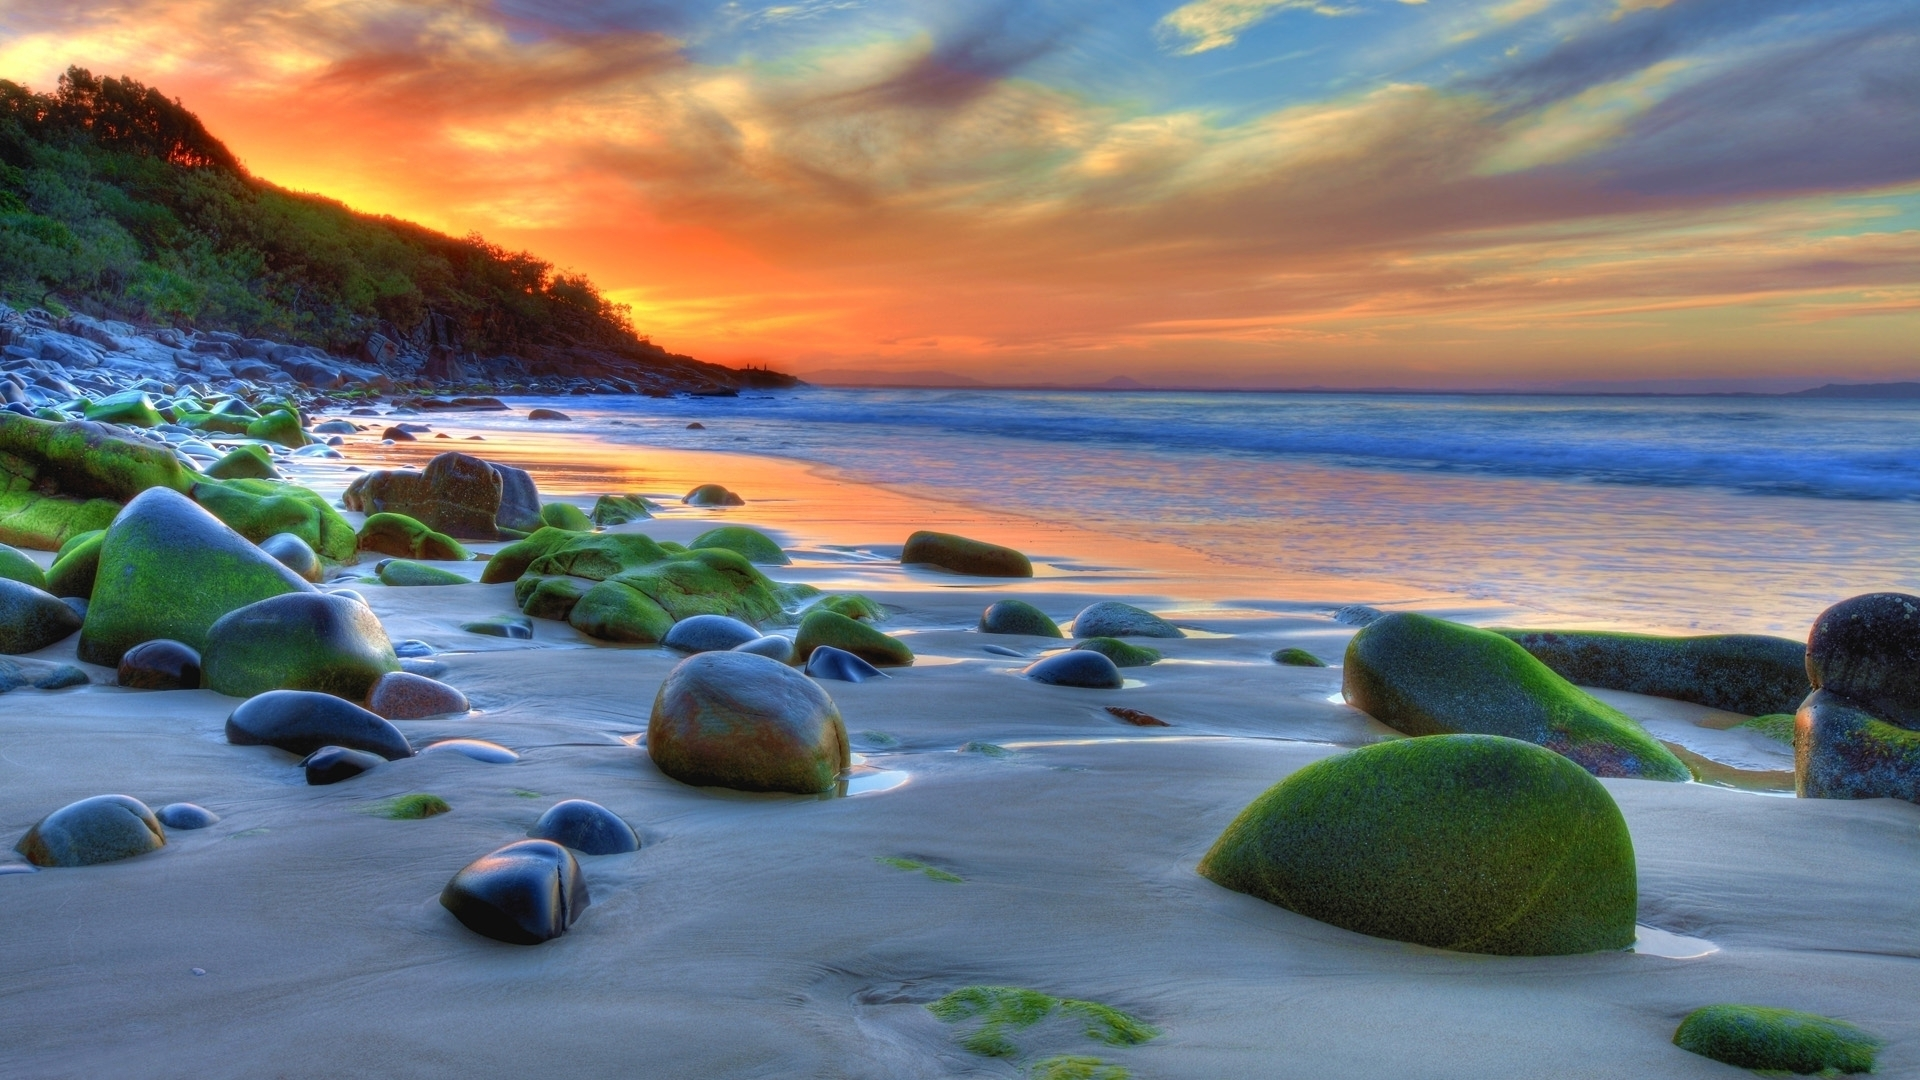 HDR Beach Wallpaper